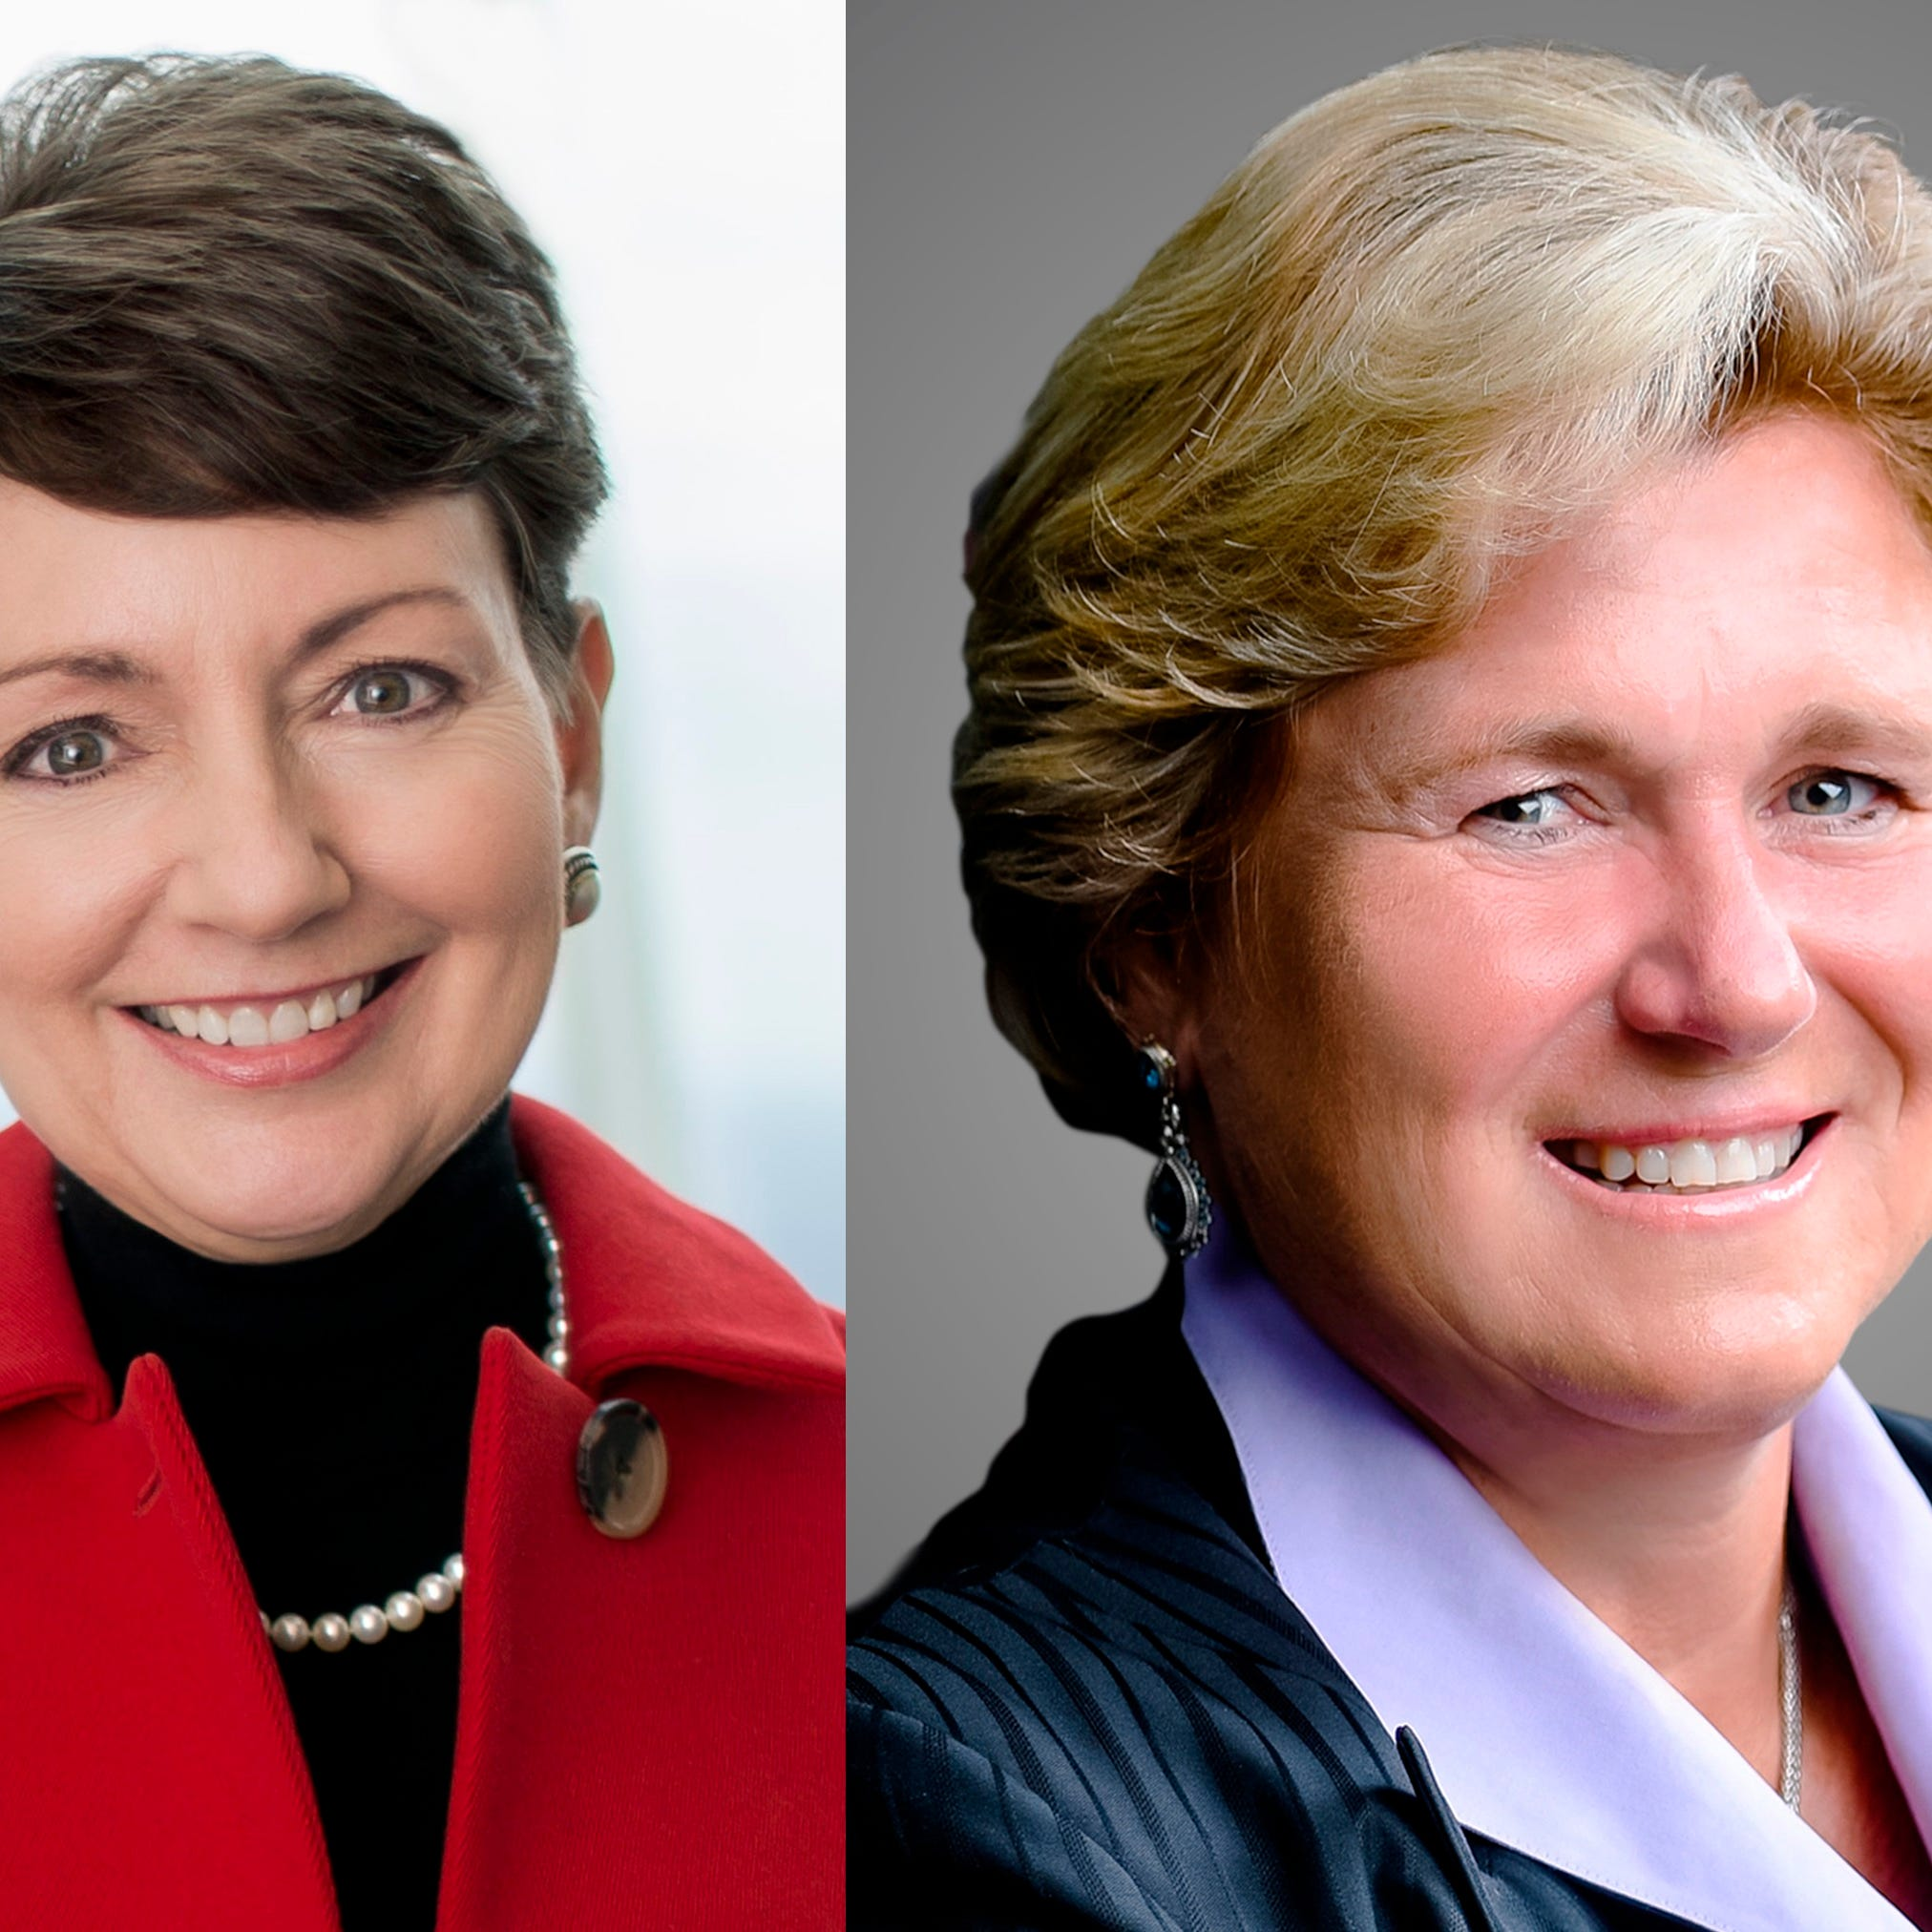 CEOs with Indiana connections rank high on Fortune's Most Powerful Women list